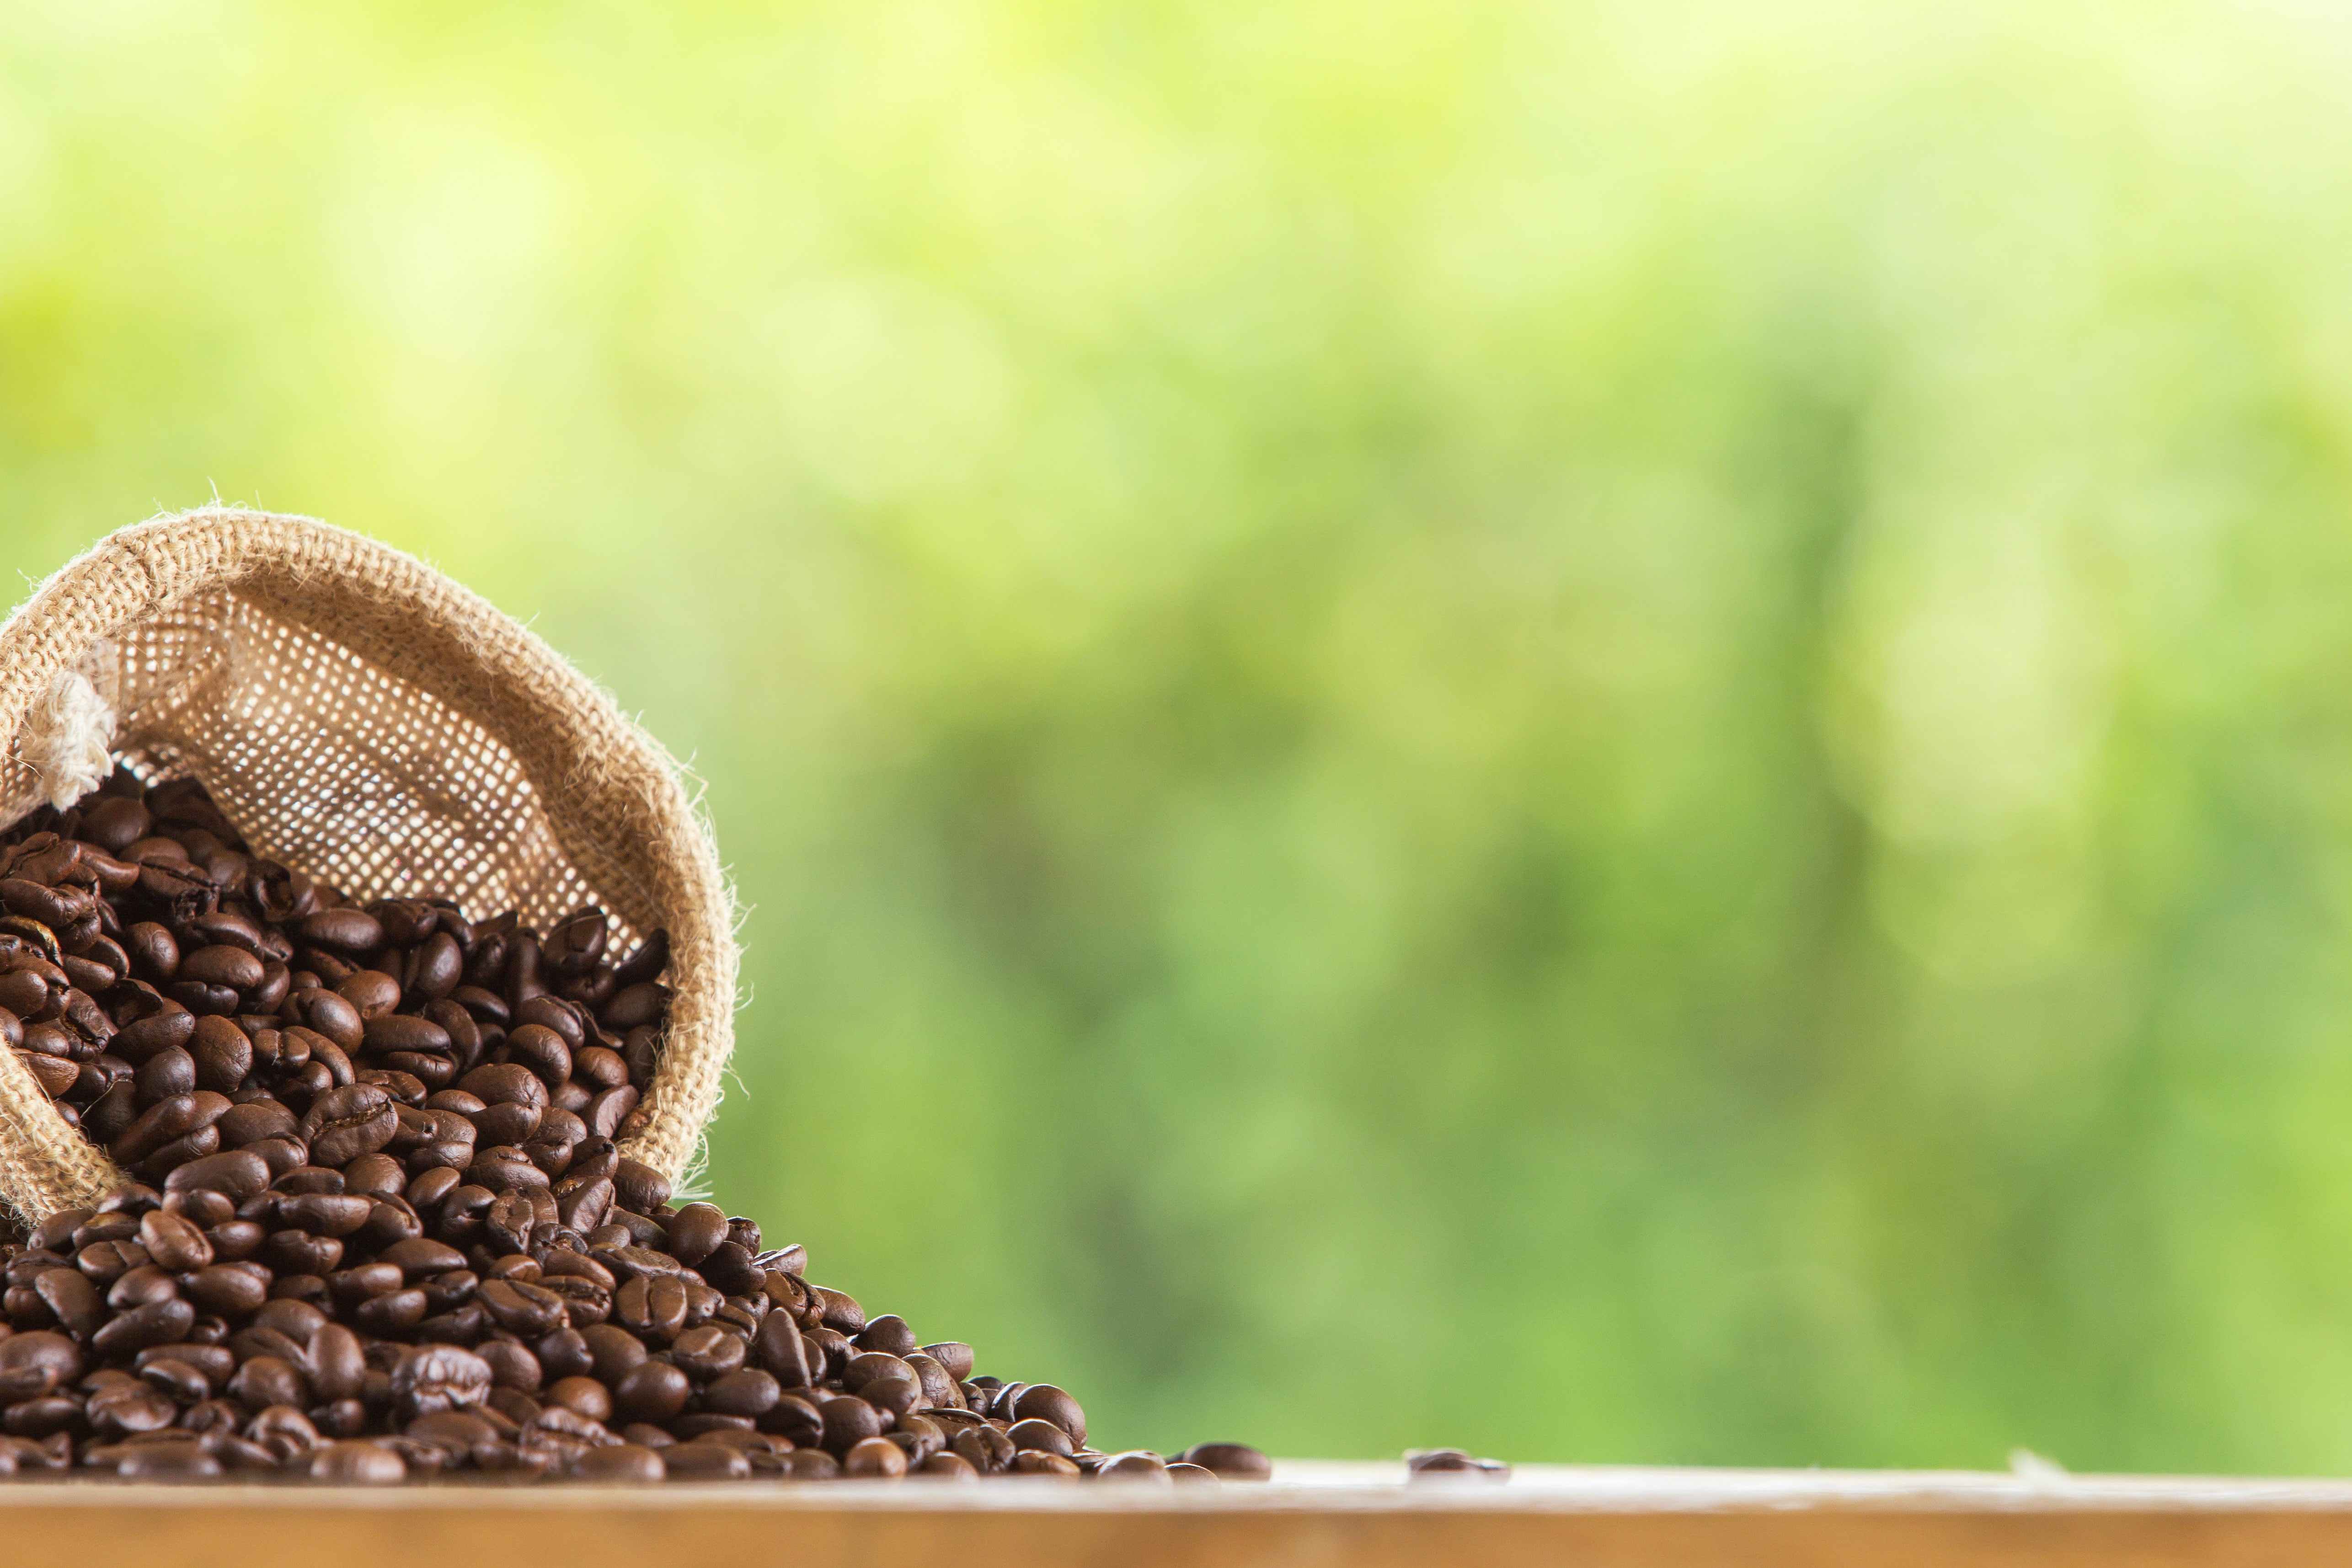 coffee-bean-sack-wooden-tabletop-against-grunge-green-blur-background-min